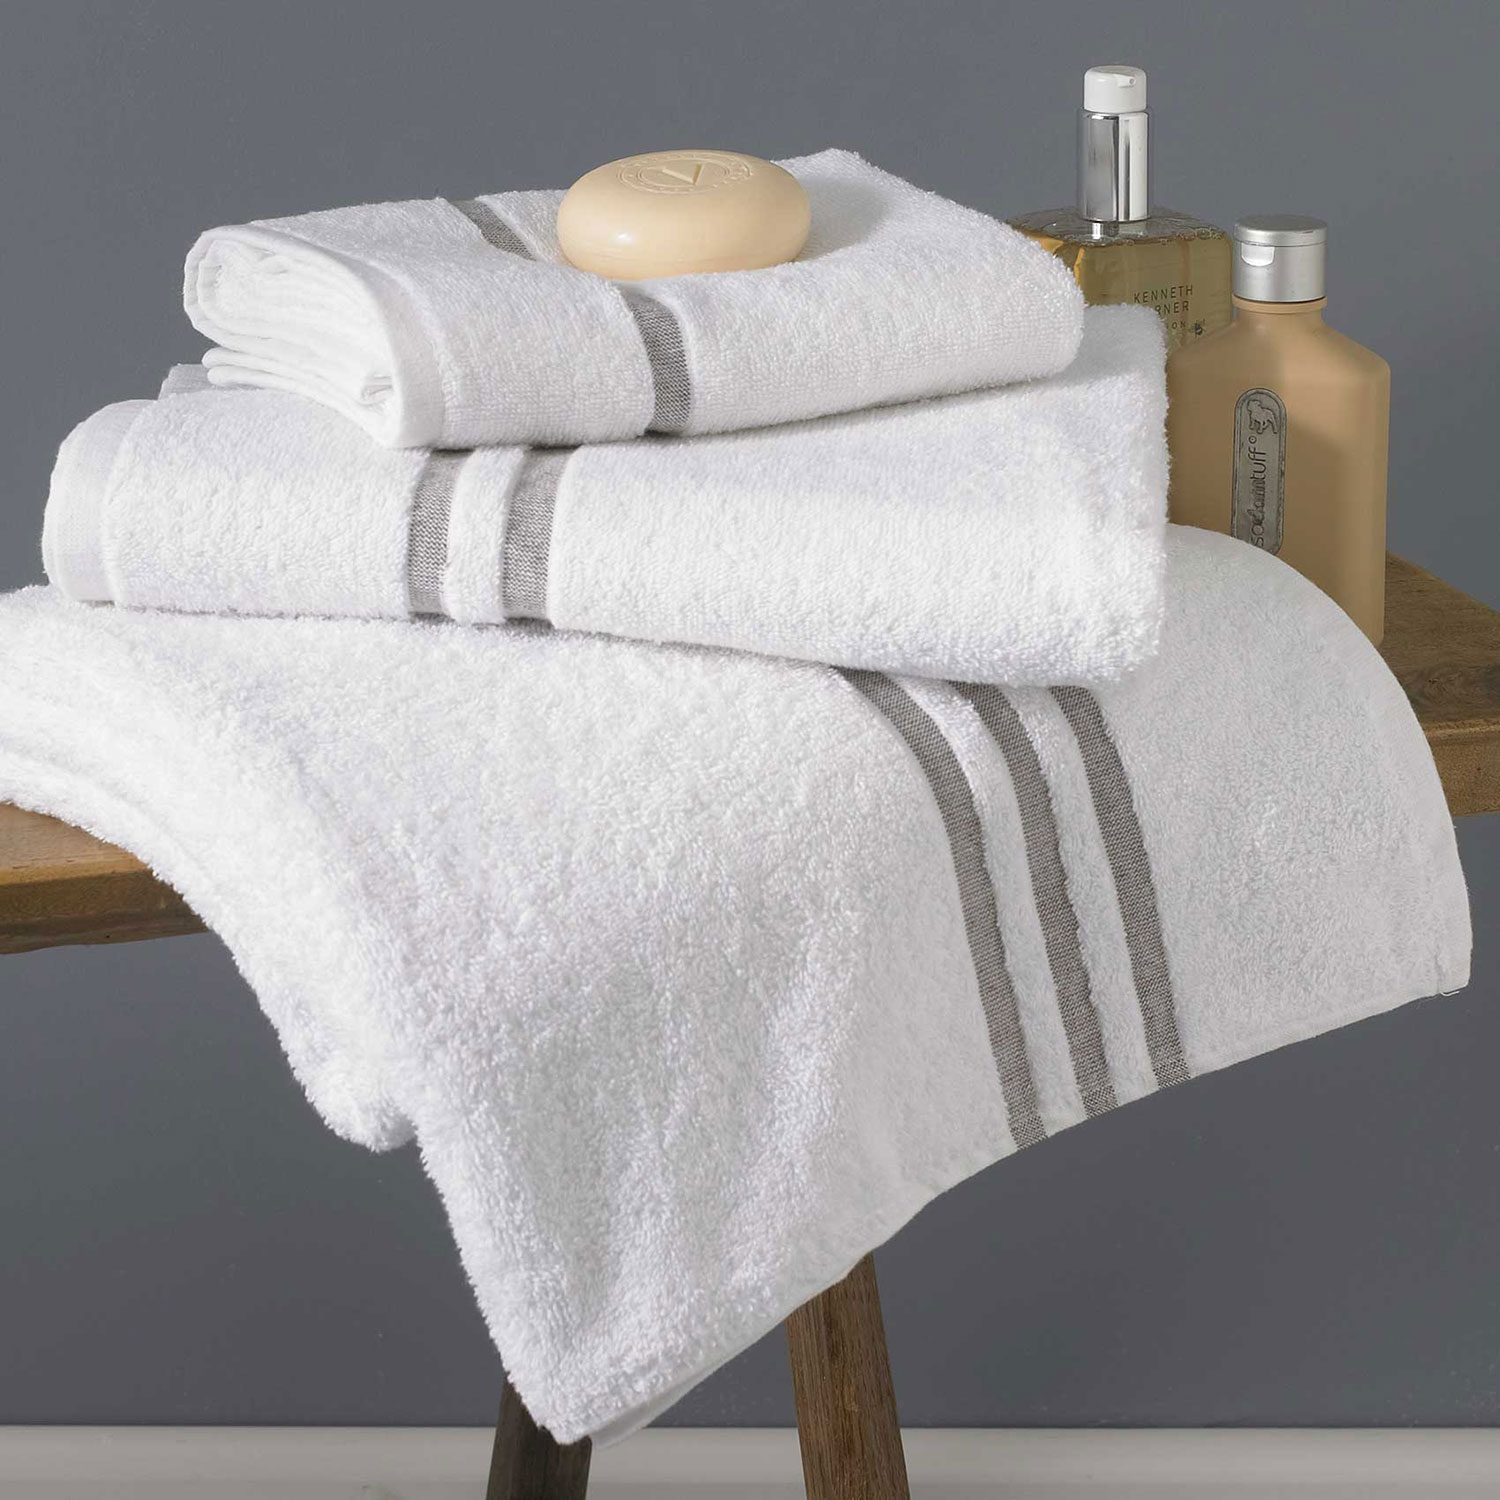 BROWN LAND COTTON TOWELS